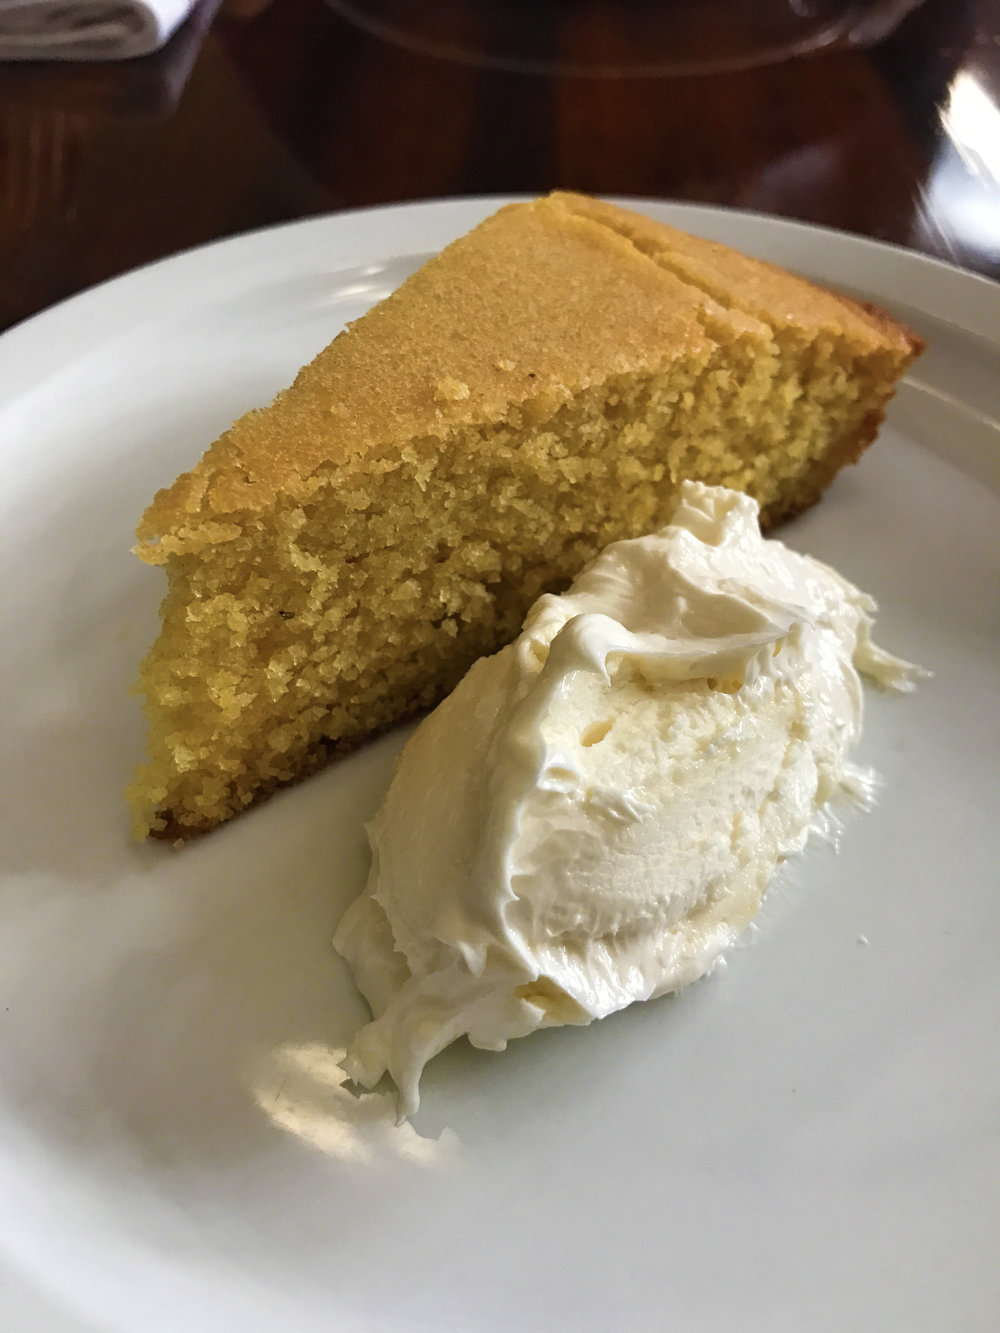 Warm homemade corn bread with whipped honey butter